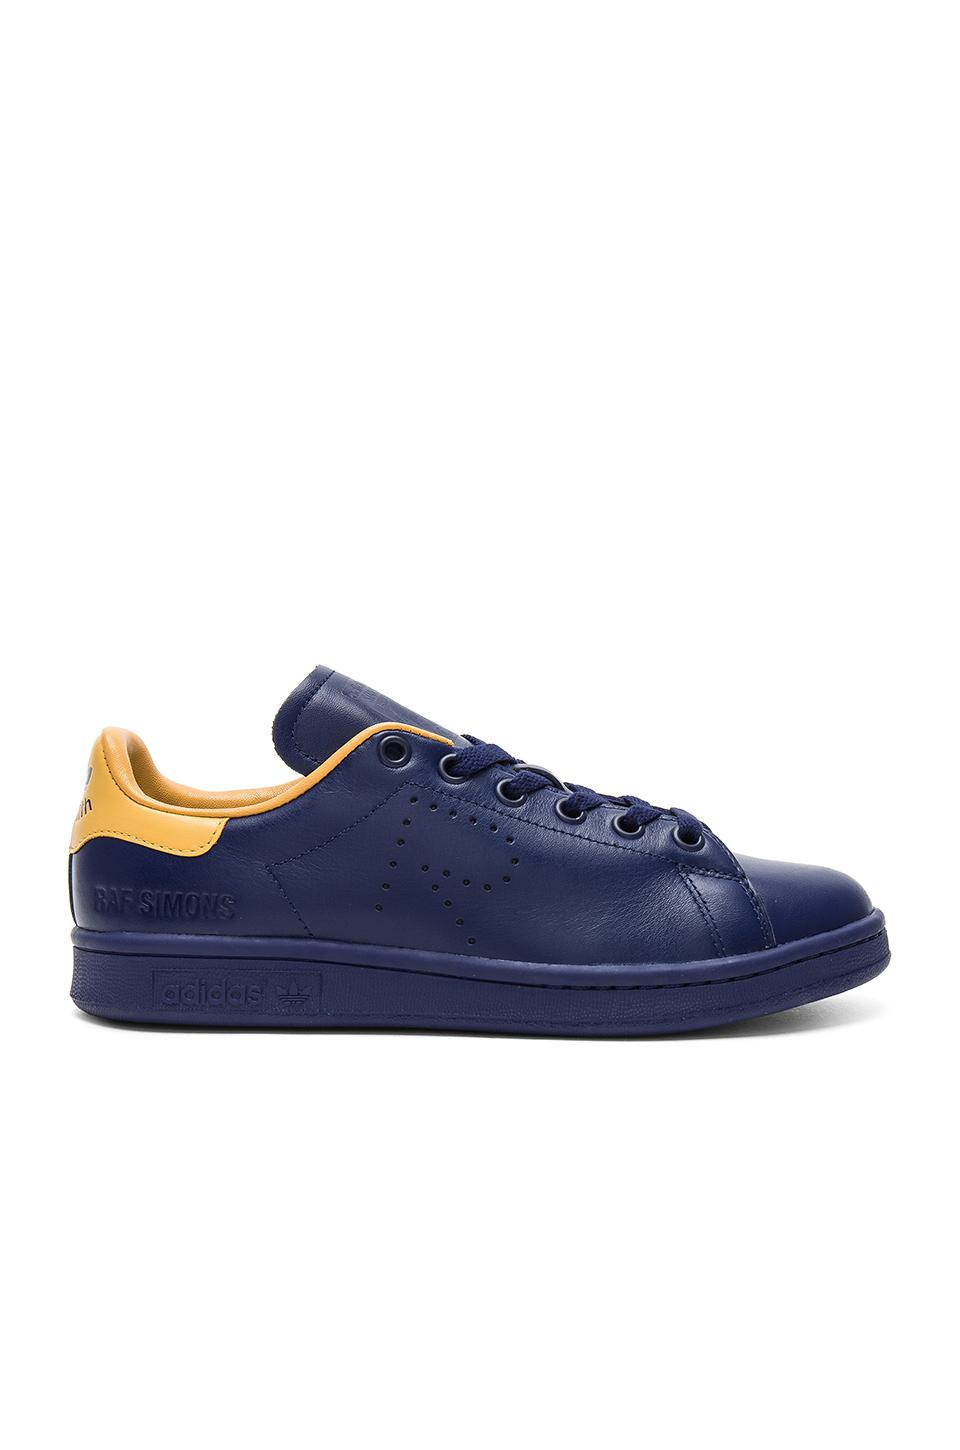 Lyst Adidas By Raf Simons Stan Smith Sneaker In Blue Blue In in Blue for Men fcf5c7